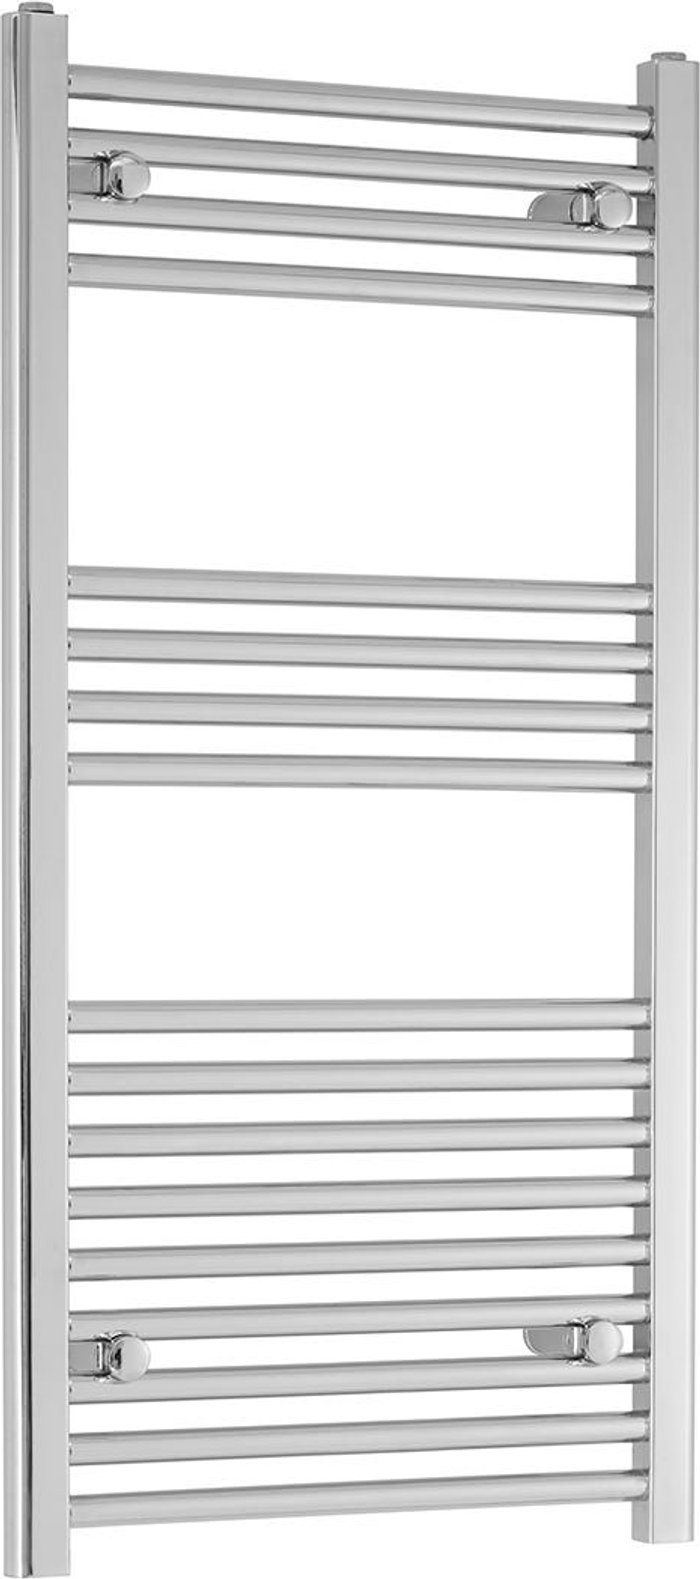 Towelrads Towelrads Heating Style Blythe Ladder Rail 1400x600mm Straight - Chrome